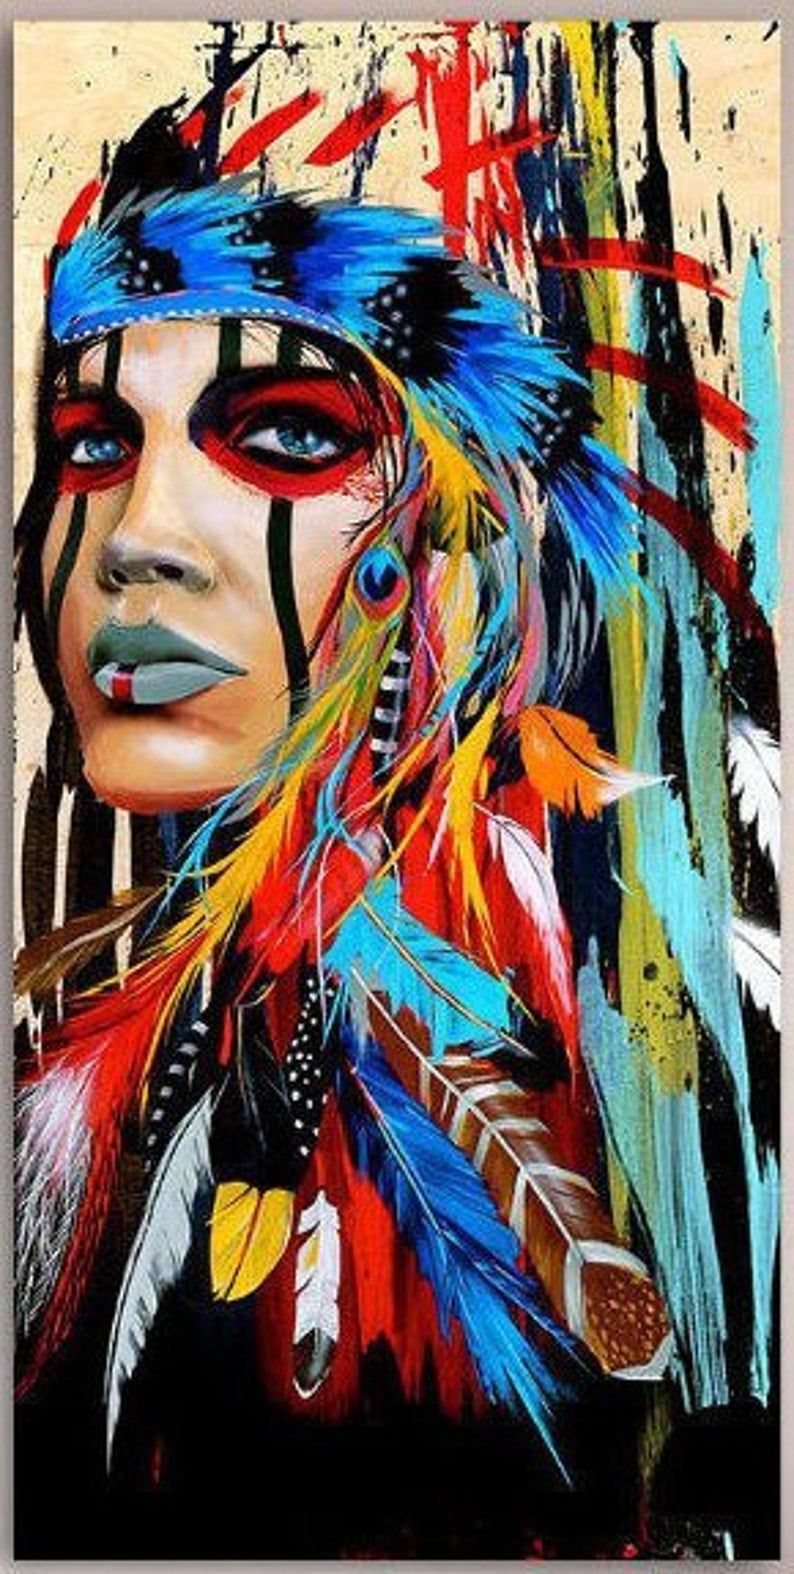 Portrait Canvas Art Wall Pictures For Living Room Indian Etsy In 2020 American Painting Native American Art Native American Paintings